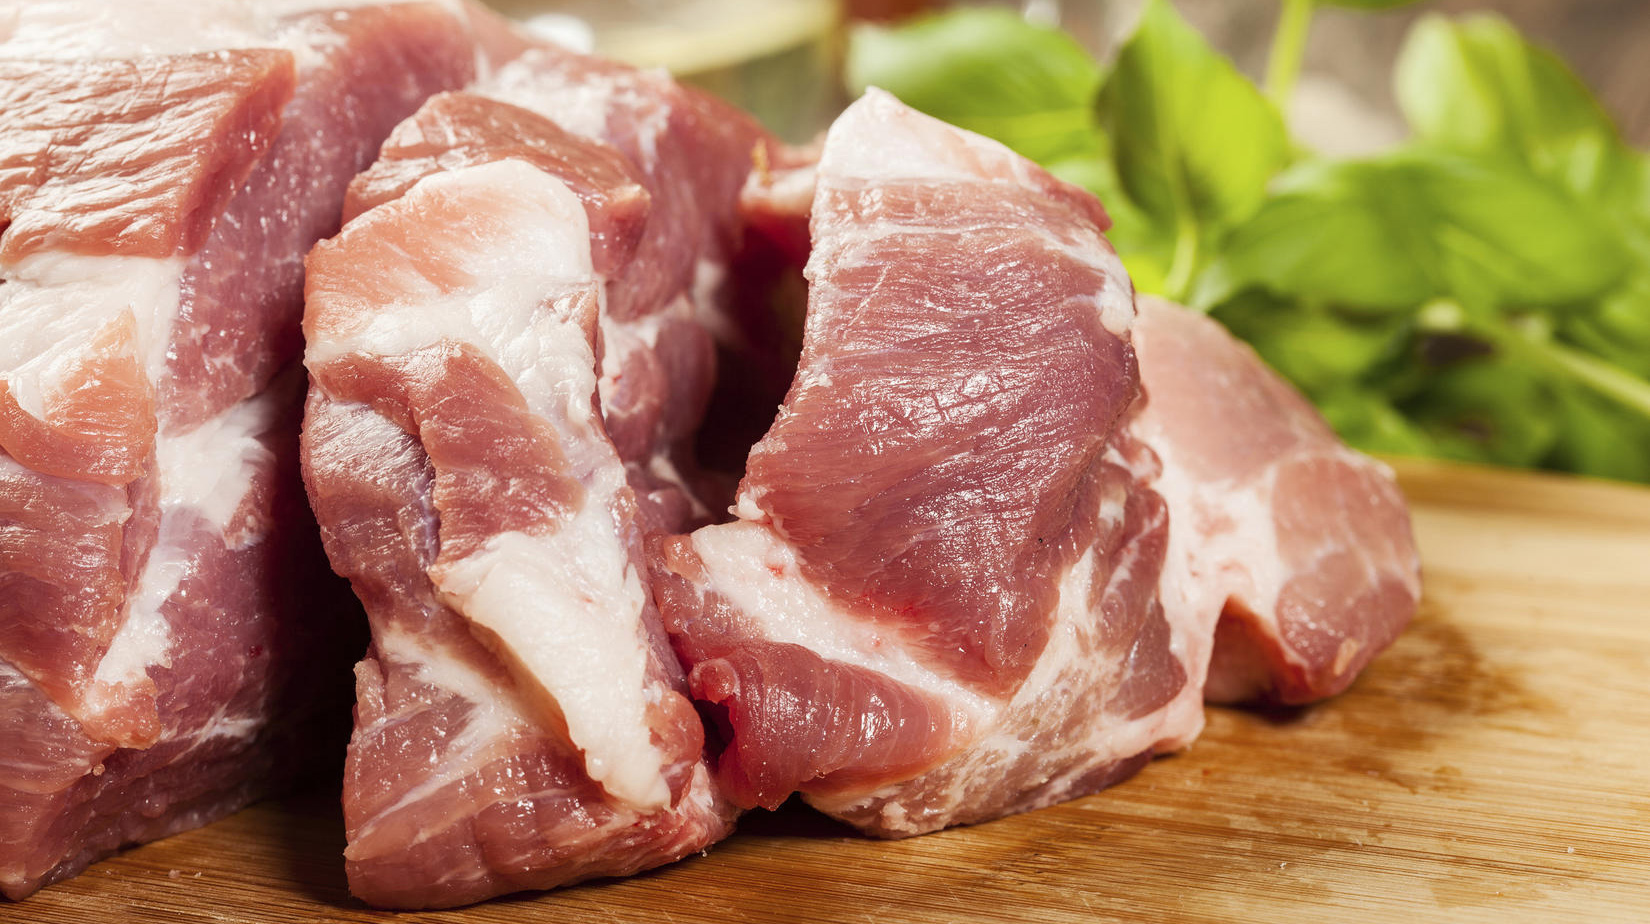 ​Illegal sale of meat would not be allowed in Dehradun, says Kaushik Madan